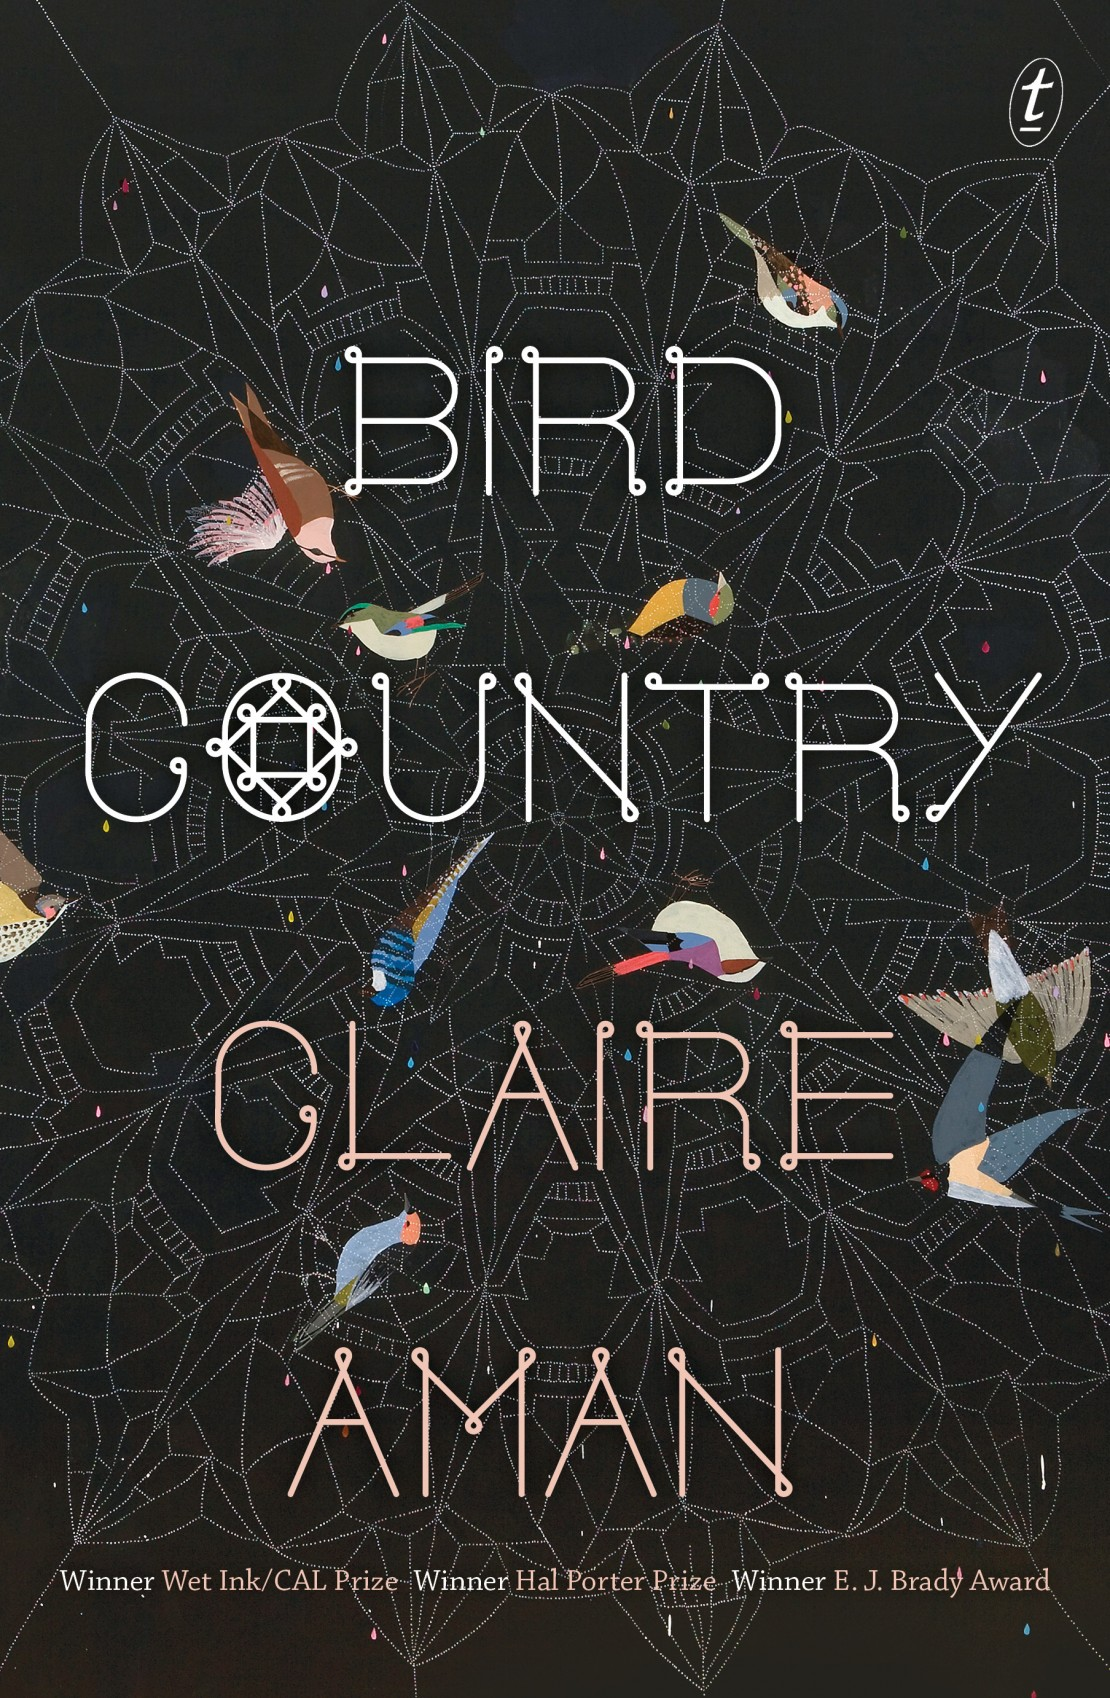 Bird Country book cover